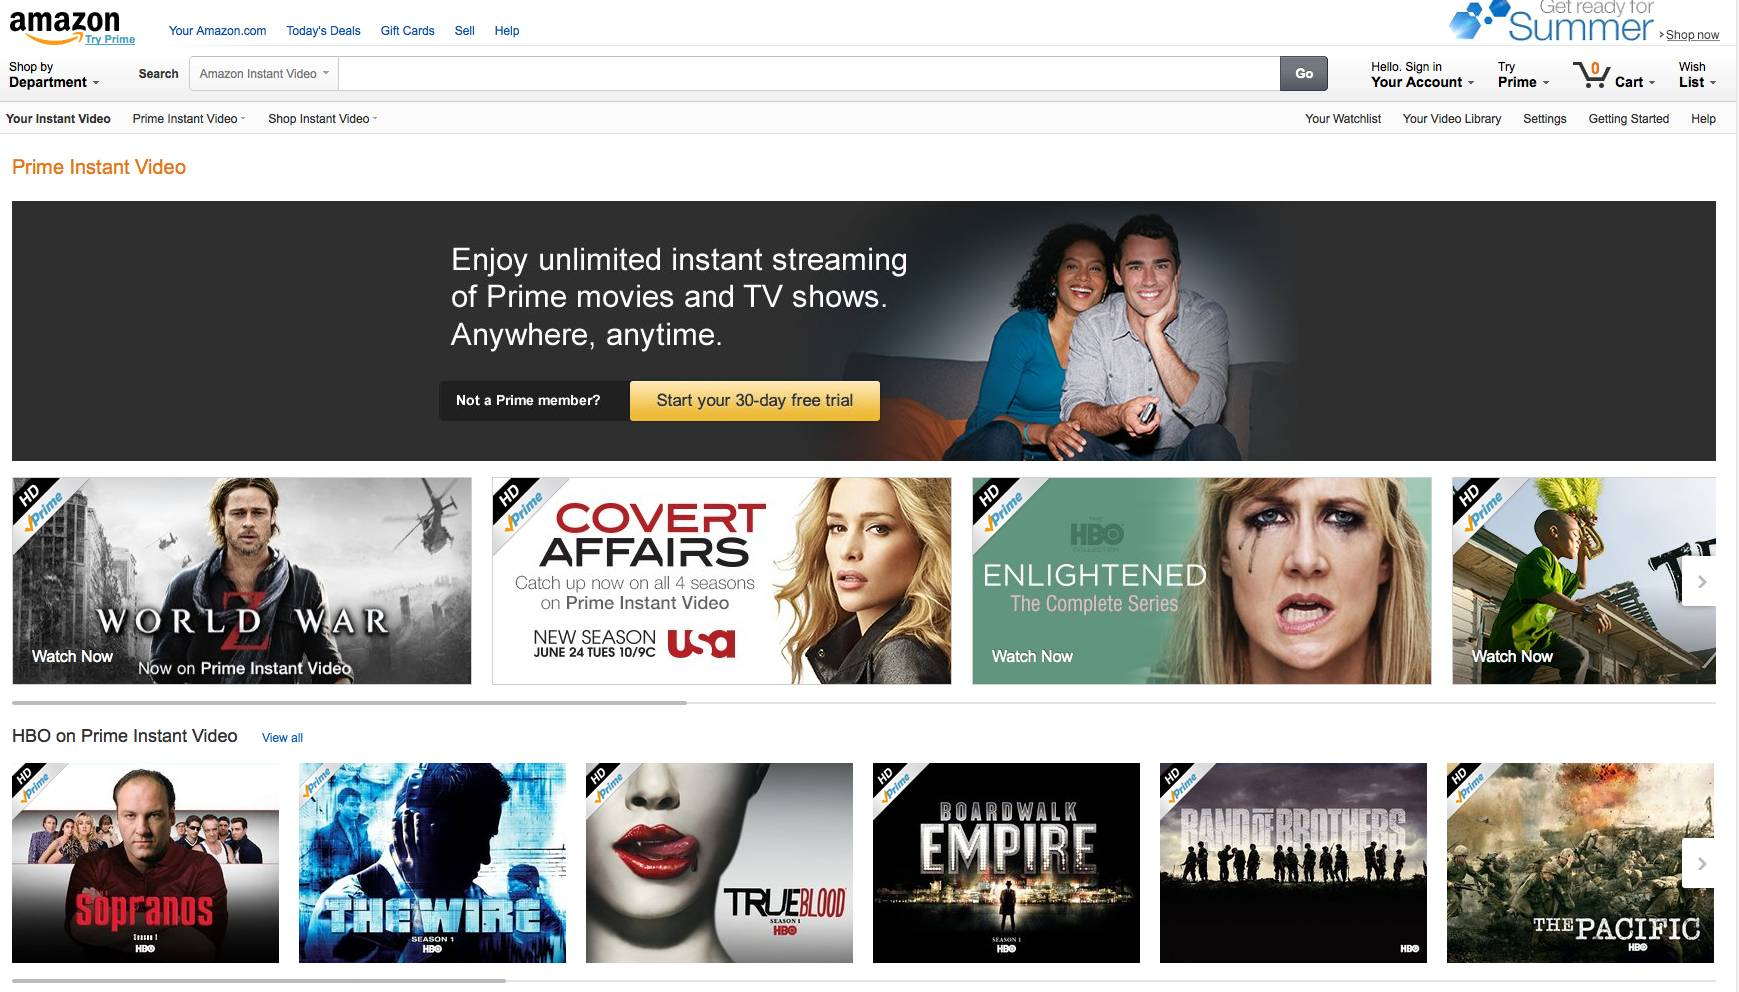 This screen shot shows movies and television programs available for free to Amazon Prime members. Amazon changed the dynamics in 2011 when it started offering movies and TV shows to Prime members for free. Unlike Netflix, Amazon offers only part of its collection for free.